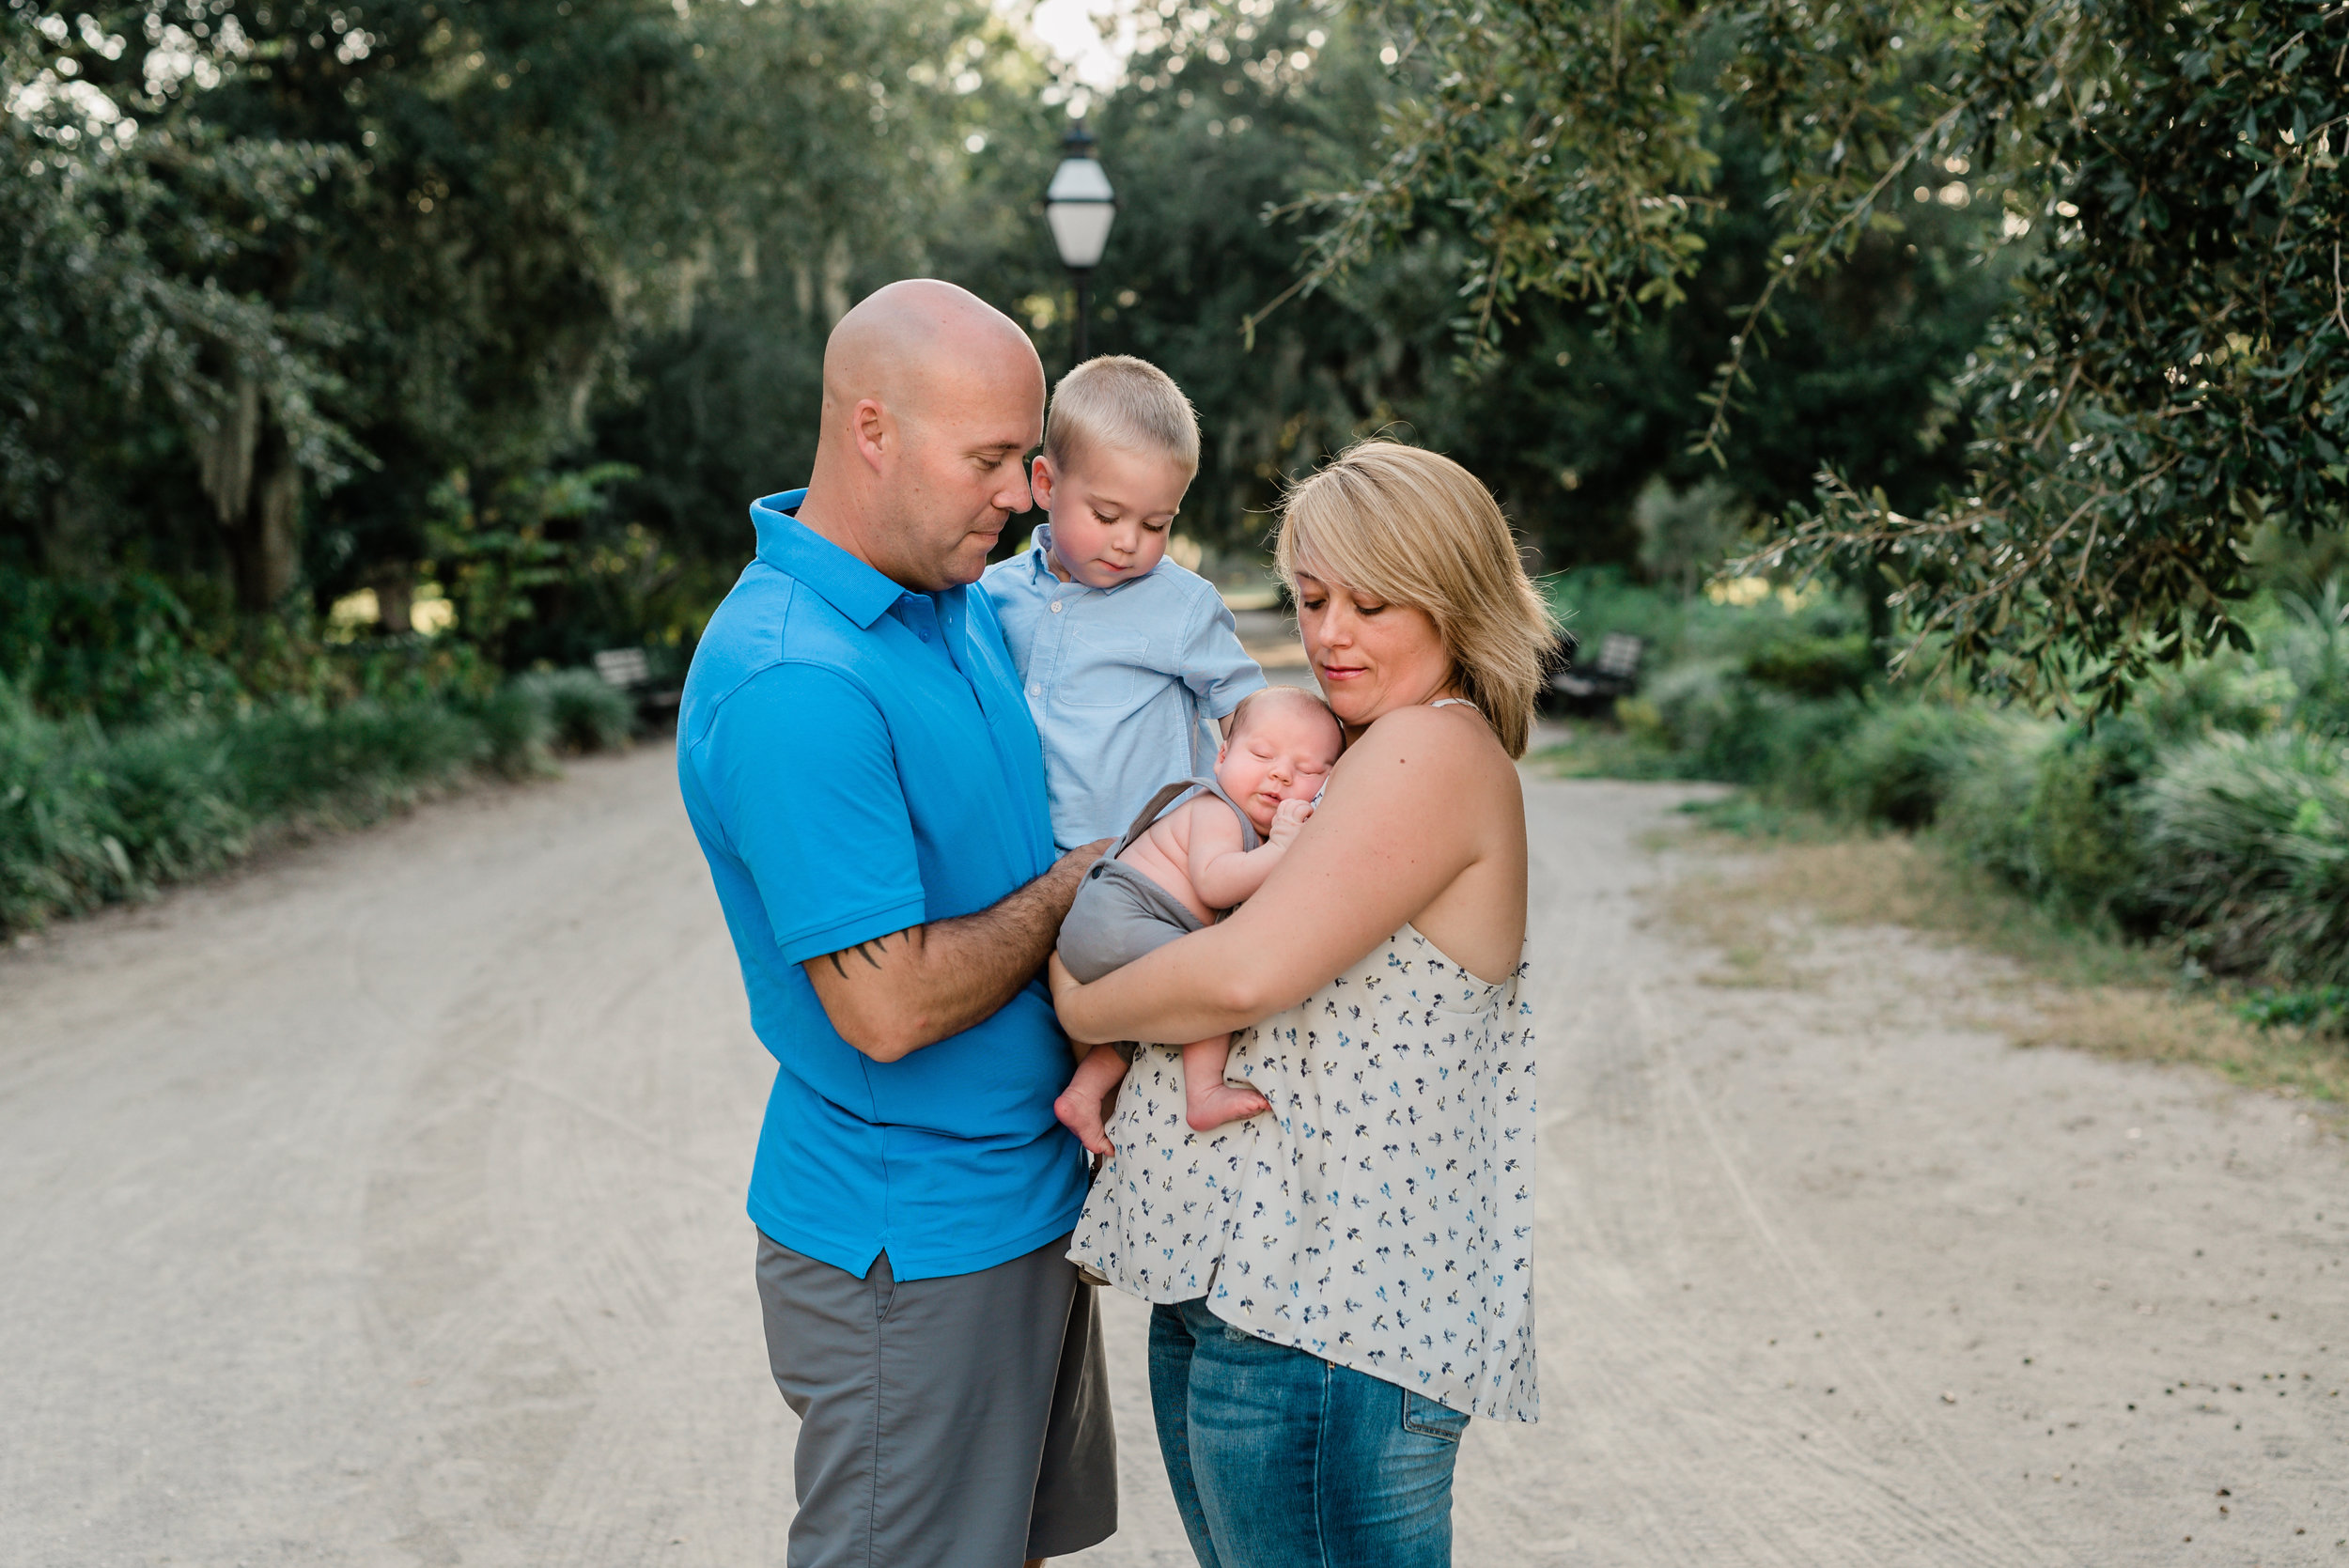 Charleston-Outdoor-Newborn-Photographer-Following-Seas-Photography-6001 copy.jpg